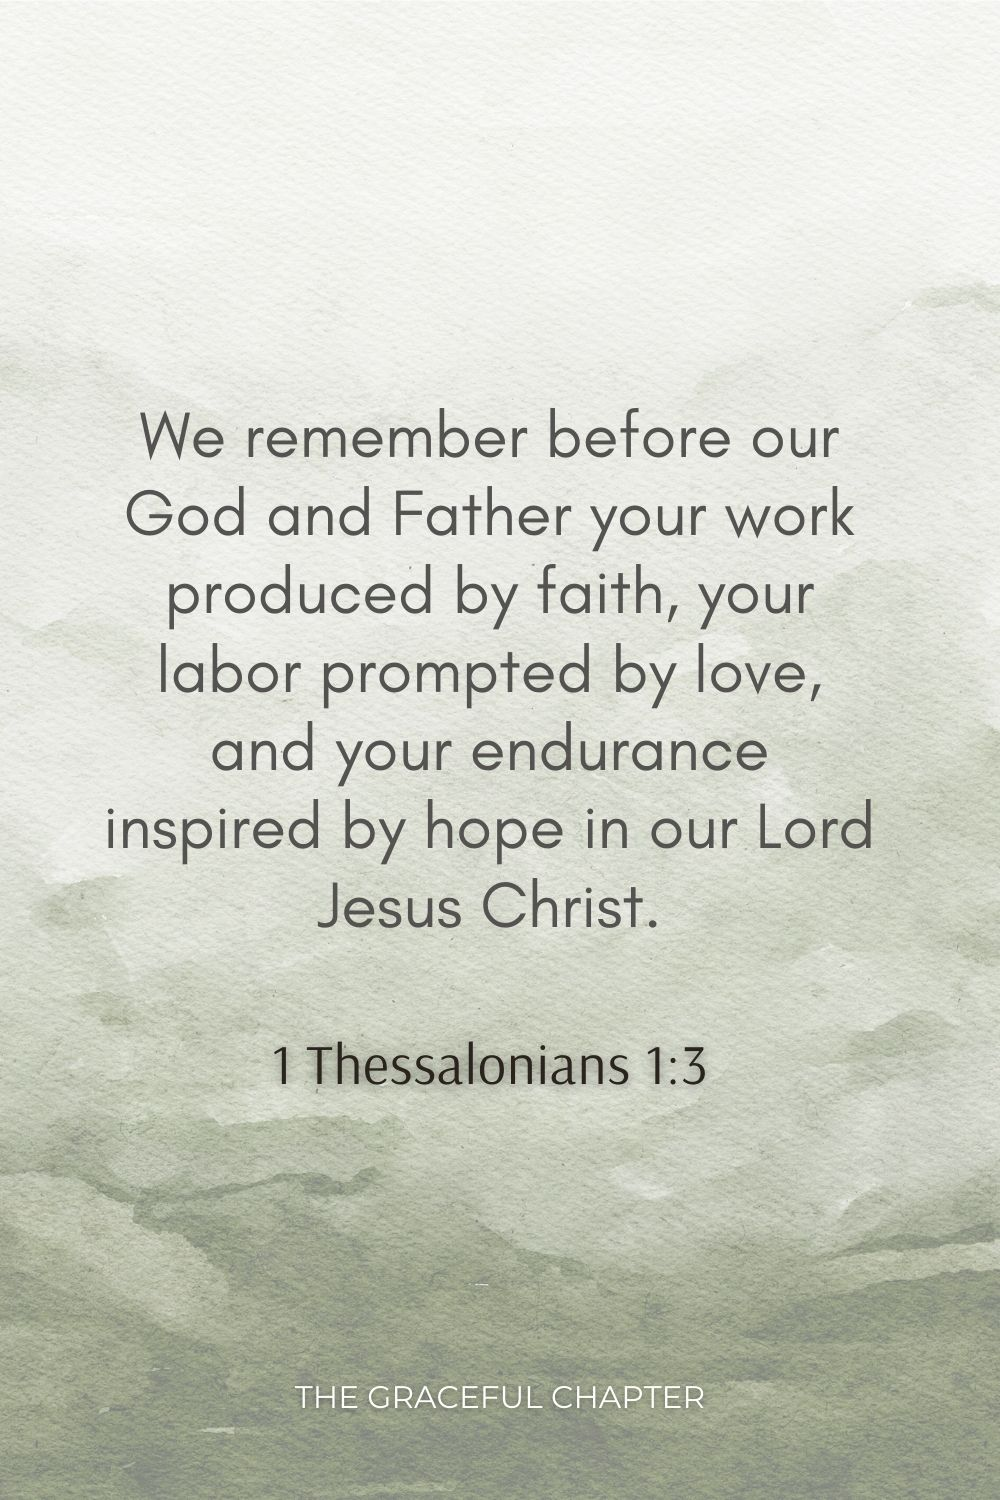 We remember before our God and Father your work produced by faith, your labor prompted by love, and your endurance inspired by hope in our Lord Jesus Christ. 1 Thessalonians 1:3